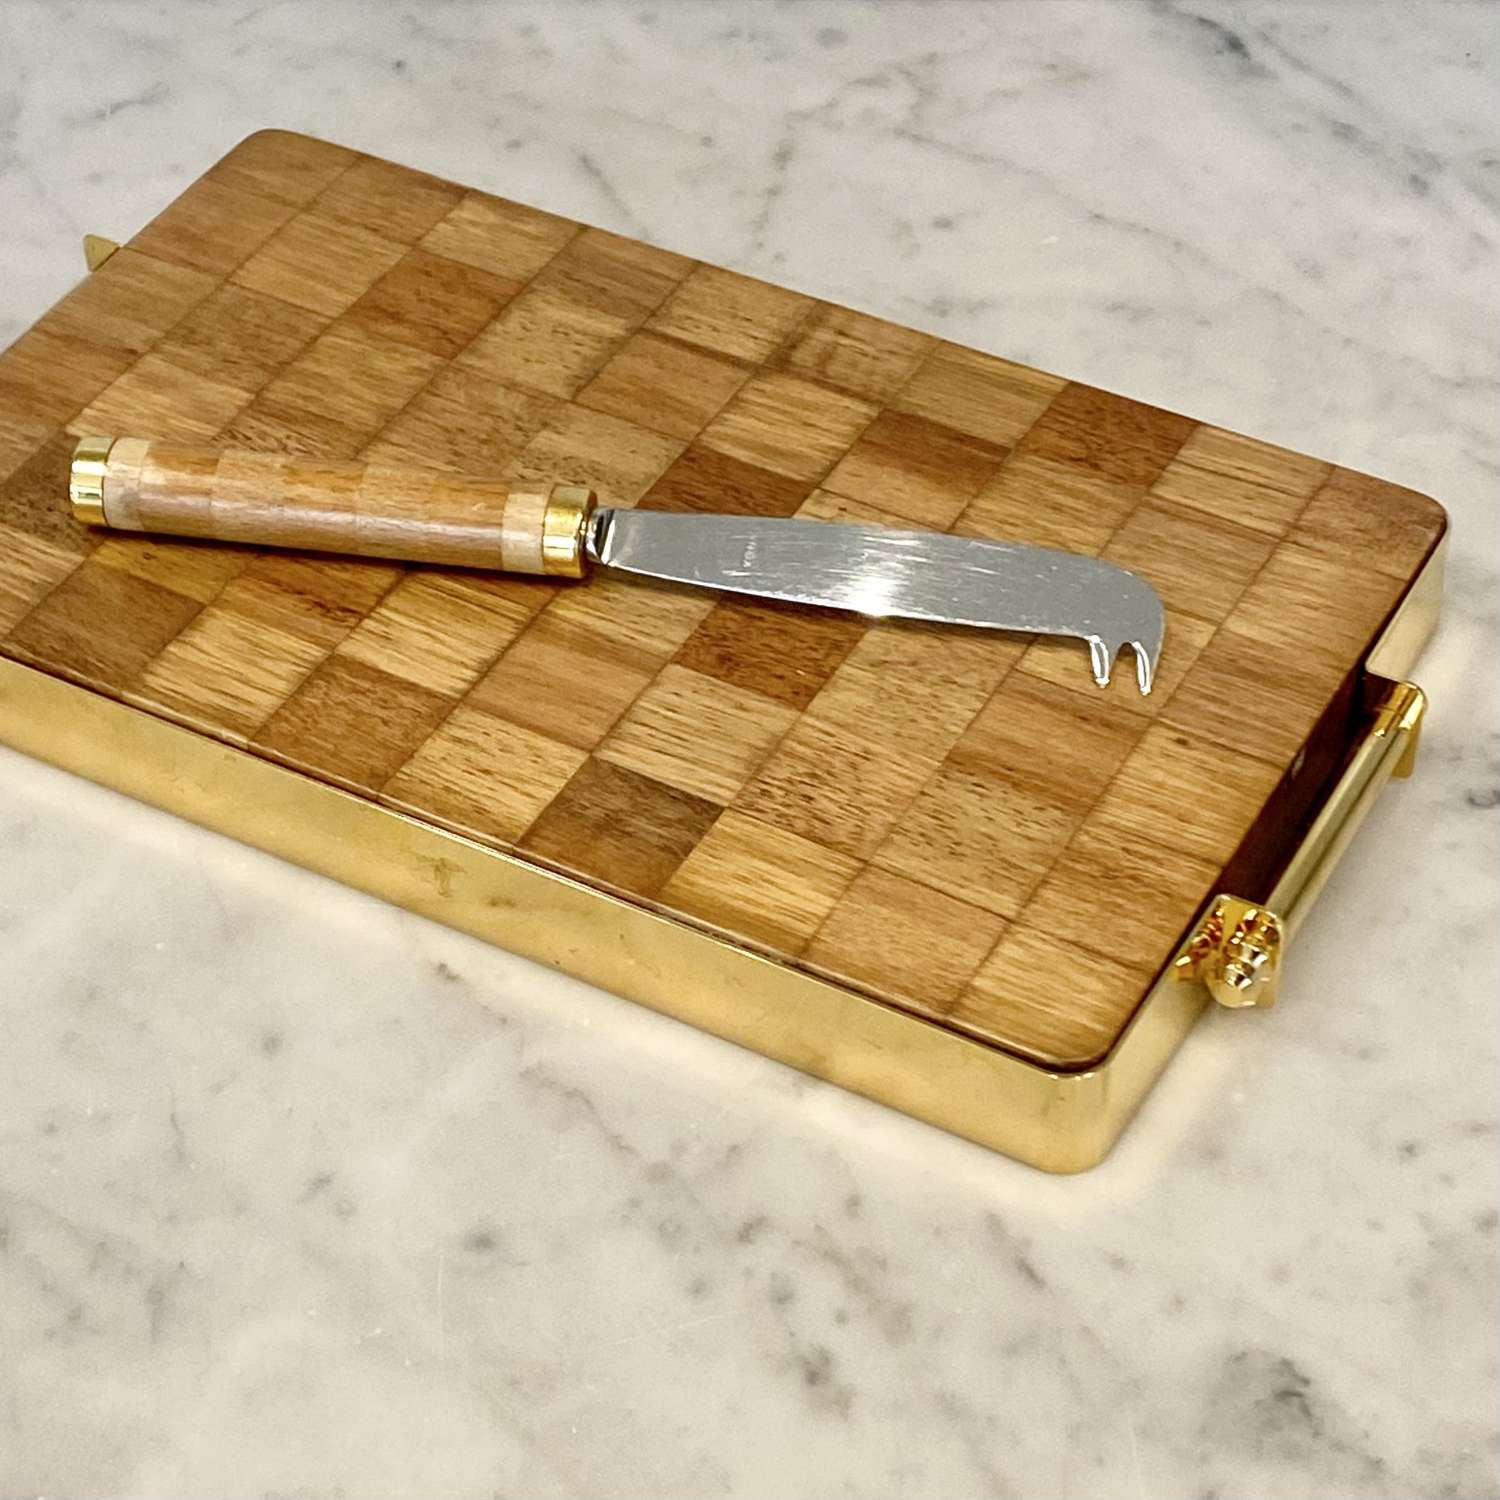 1970s wood and gilt cheeseboard by Harrods London